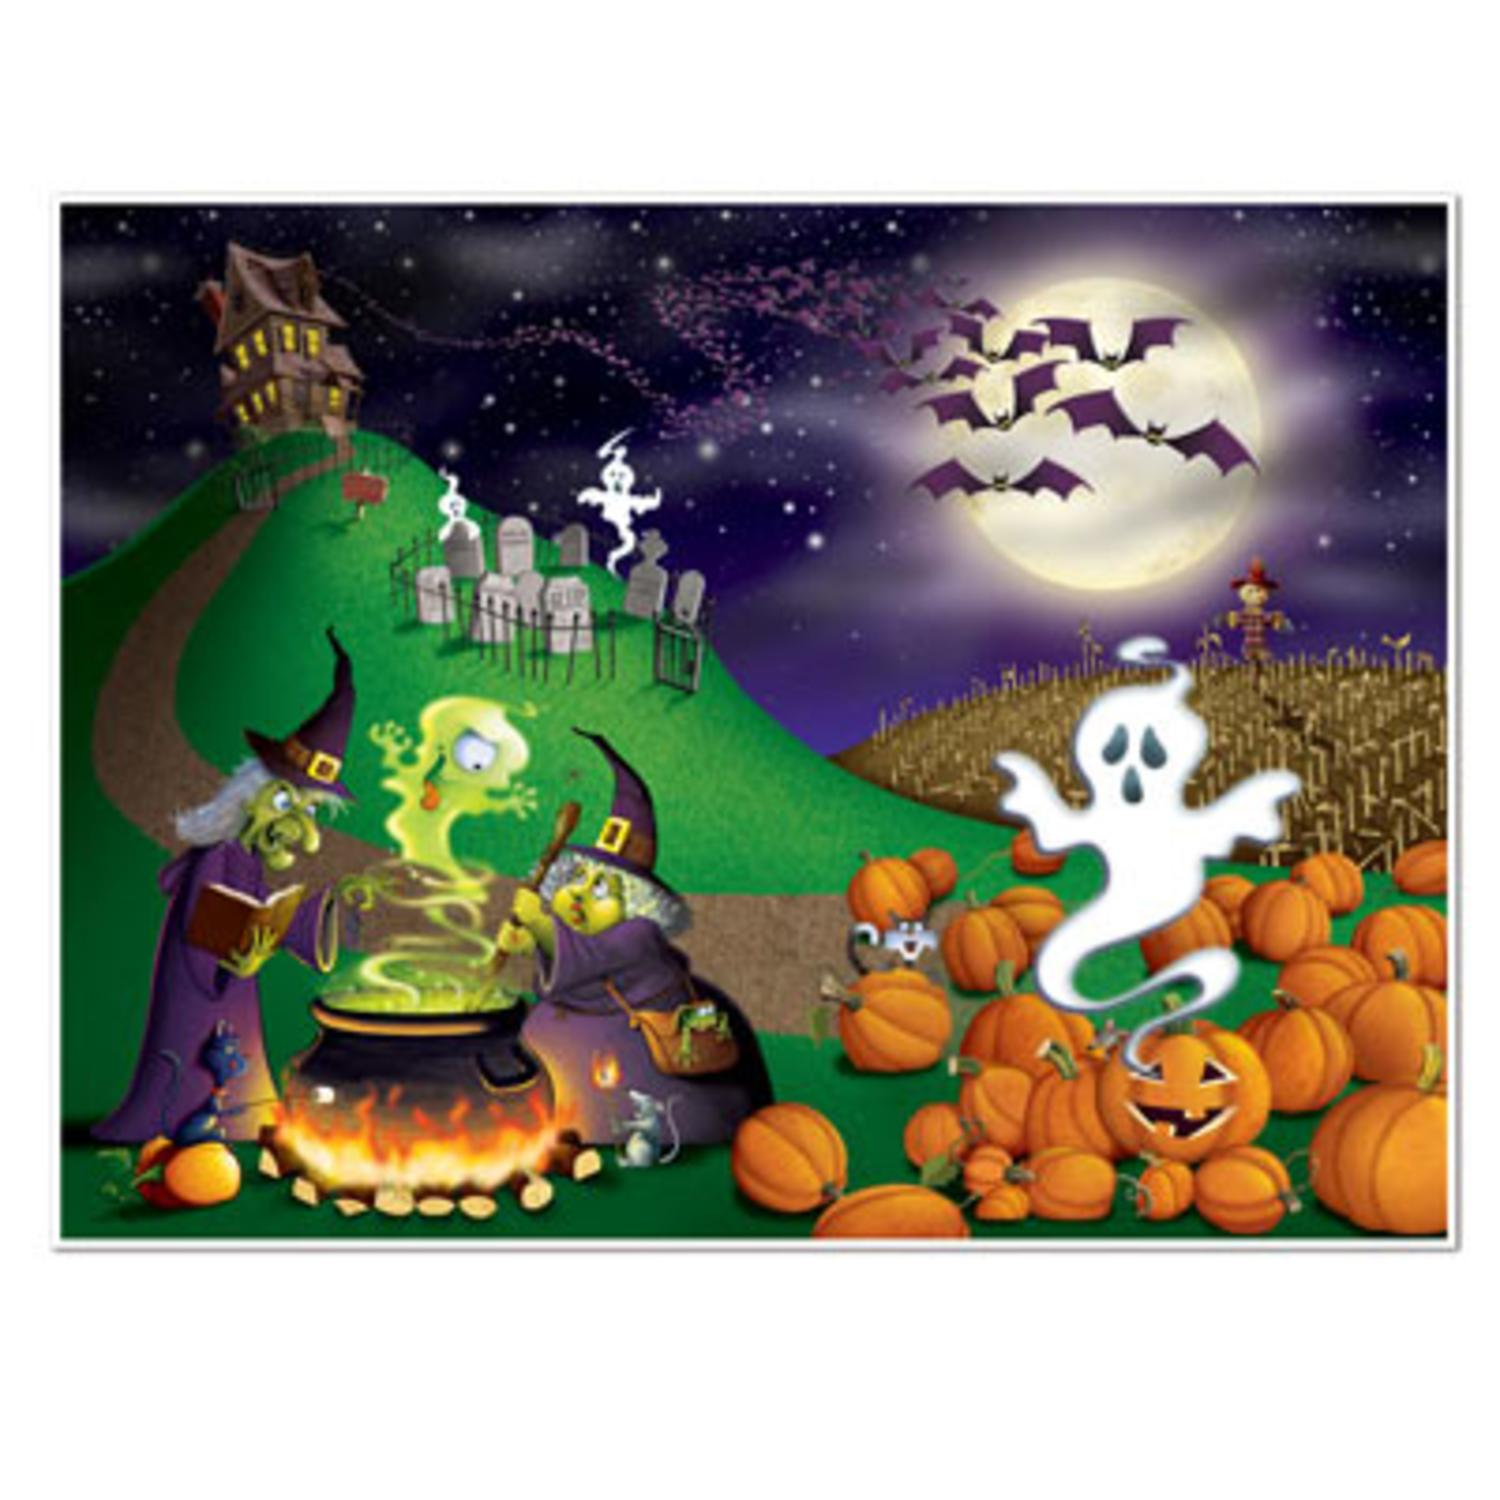 Pack of 6 Multi-Colored Halloween Scene Insta-Mural Photo...